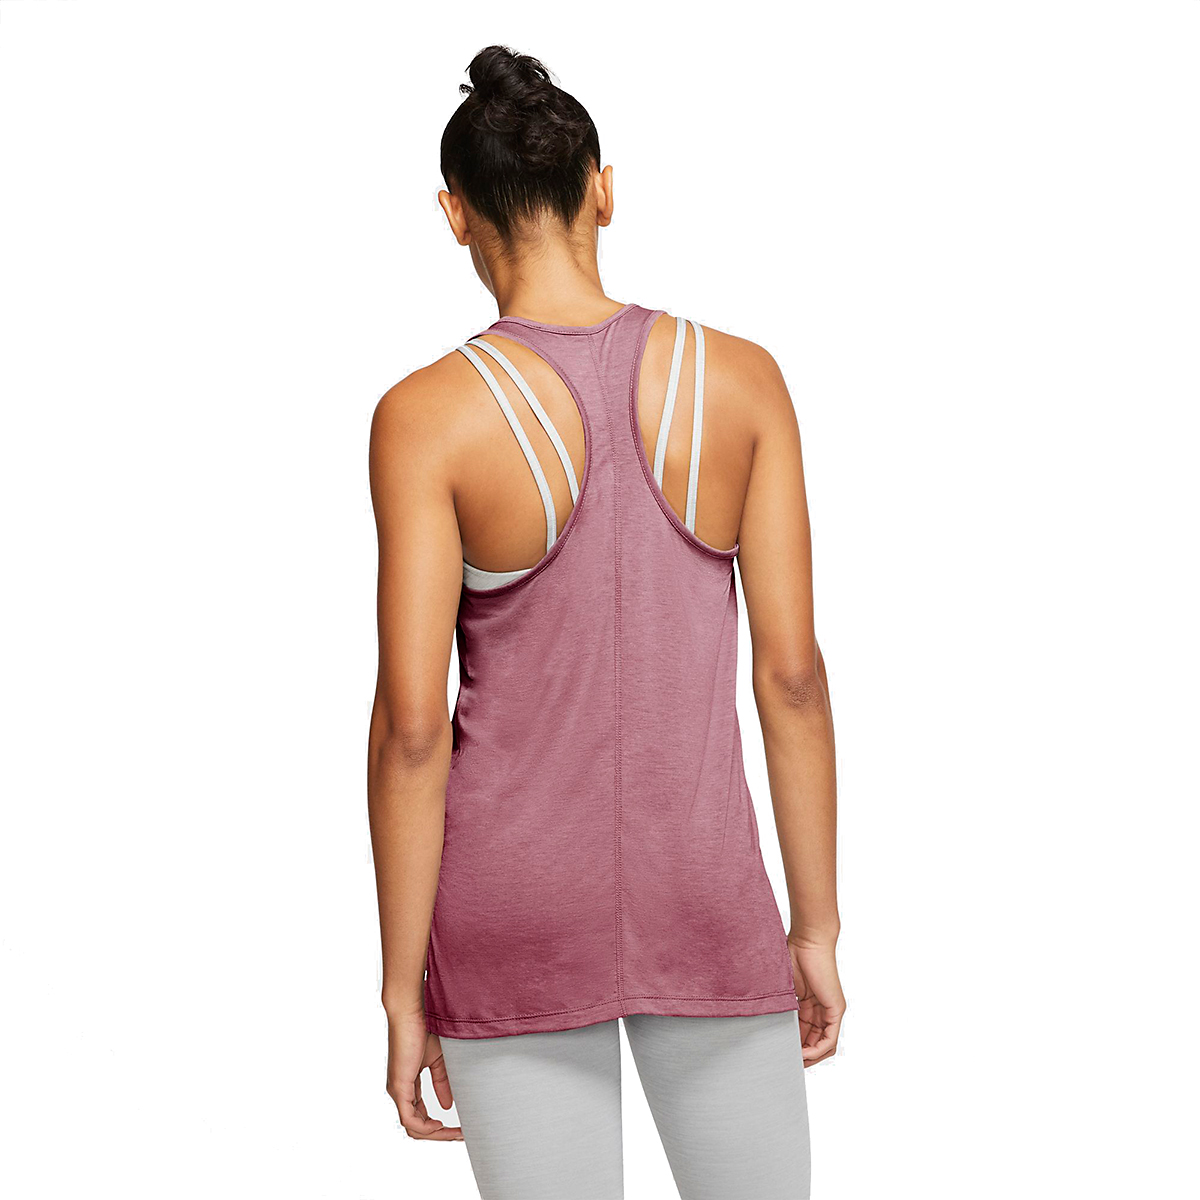 Women's Nike Yoga Layer Tank - Color: Desert Berry/Heather/Lite Arctic Pink - Size: M, Desert Berry/Heather/Lite Arctic Pink, large, image 2